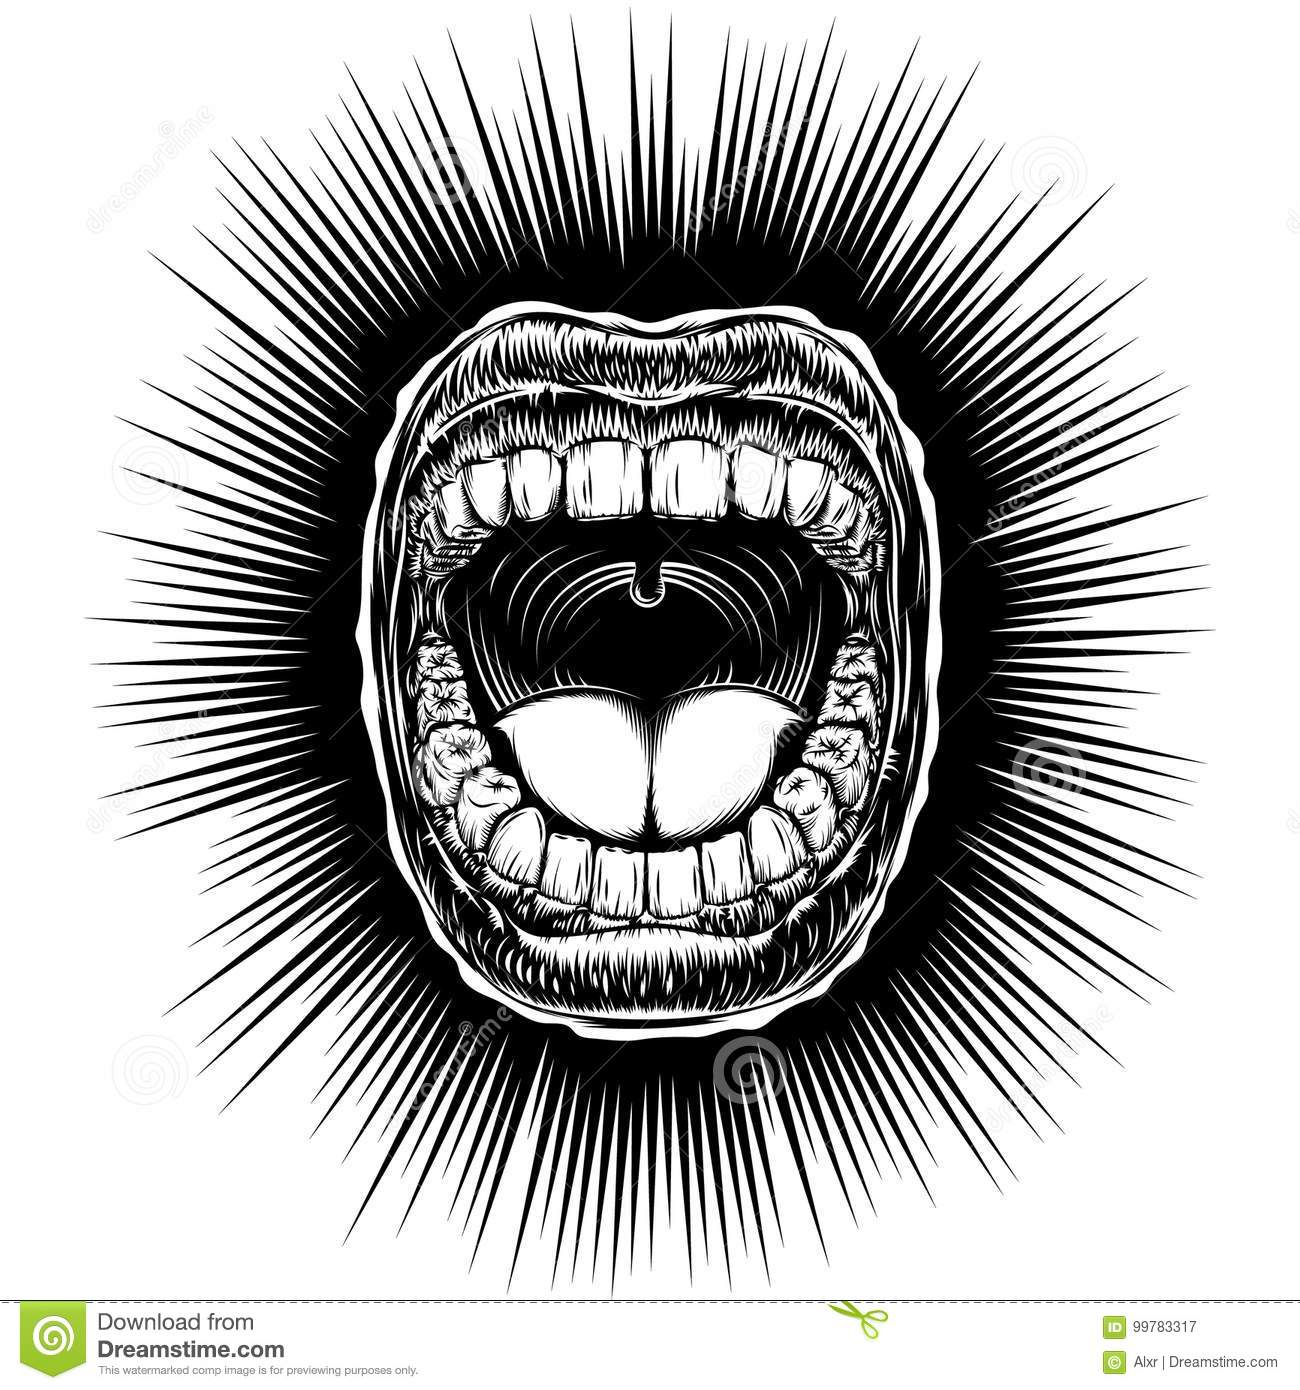 It's just an image of Gorgeous Open Mouth Smile Drawing